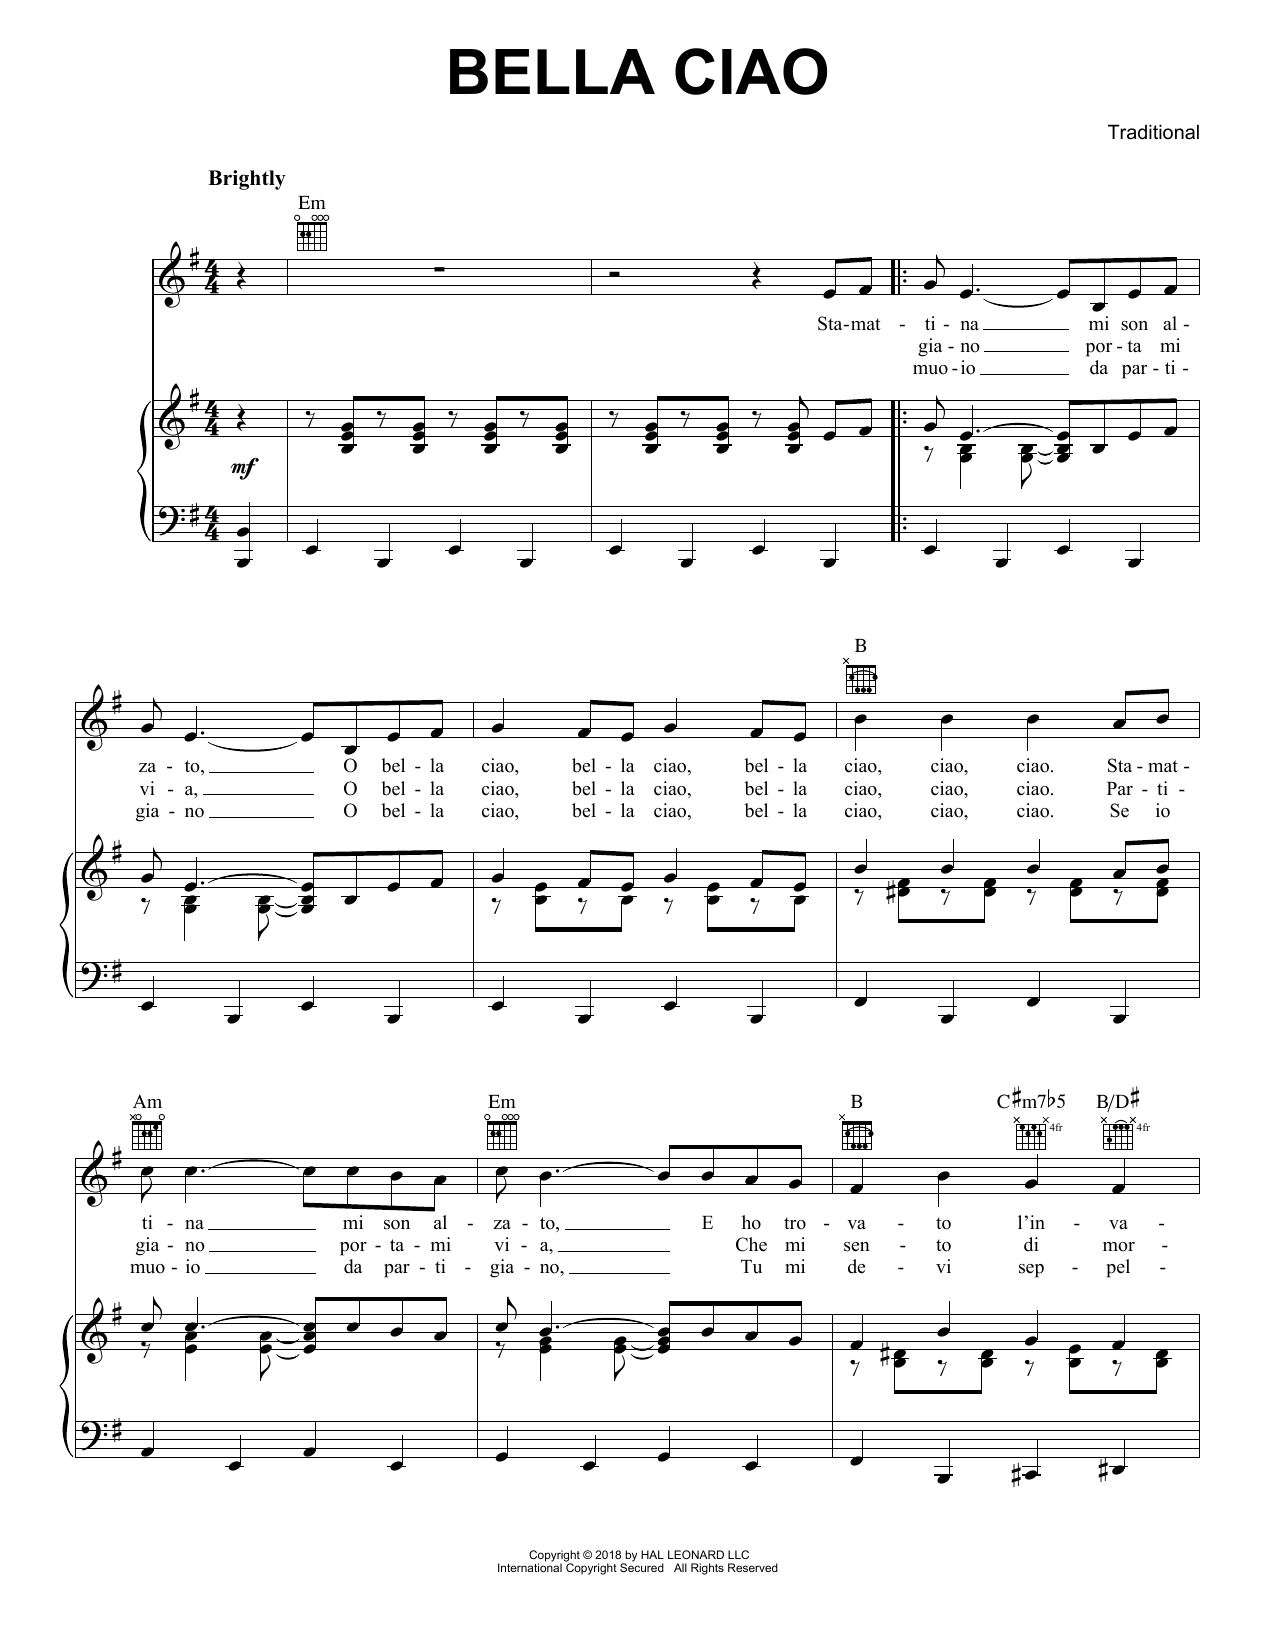 Traditional Bella Ciao Sheet Music Pdf Notes Chords Traditional Score Piano Vocal Guitar Right Hand Melody Download Printable Sku 405554